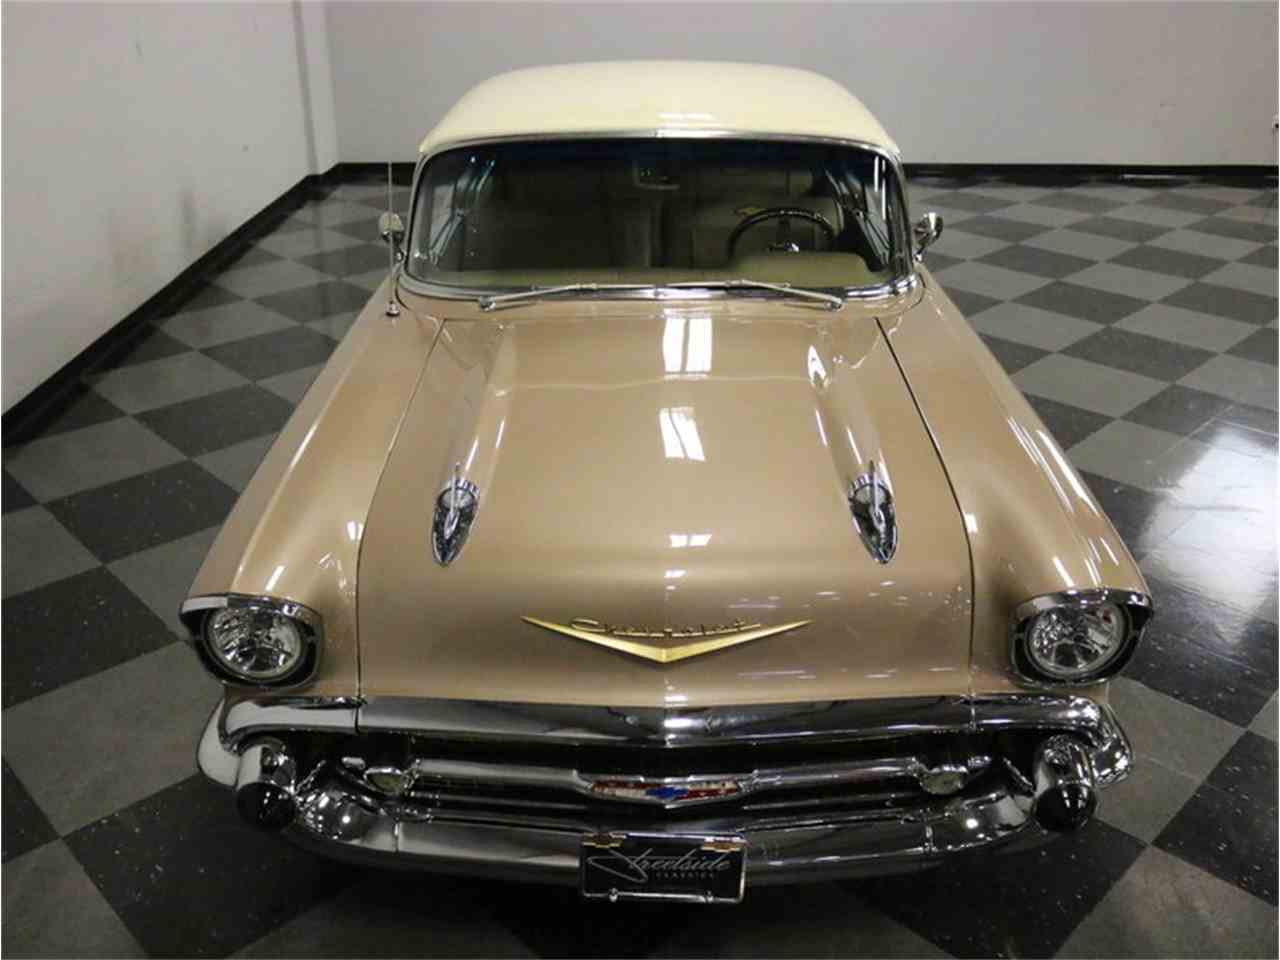 Large Picture of '57 Chevrolet 150 - $29,995.00 Offered by Streetside Classics - Dallas / Fort Worth - MOA8